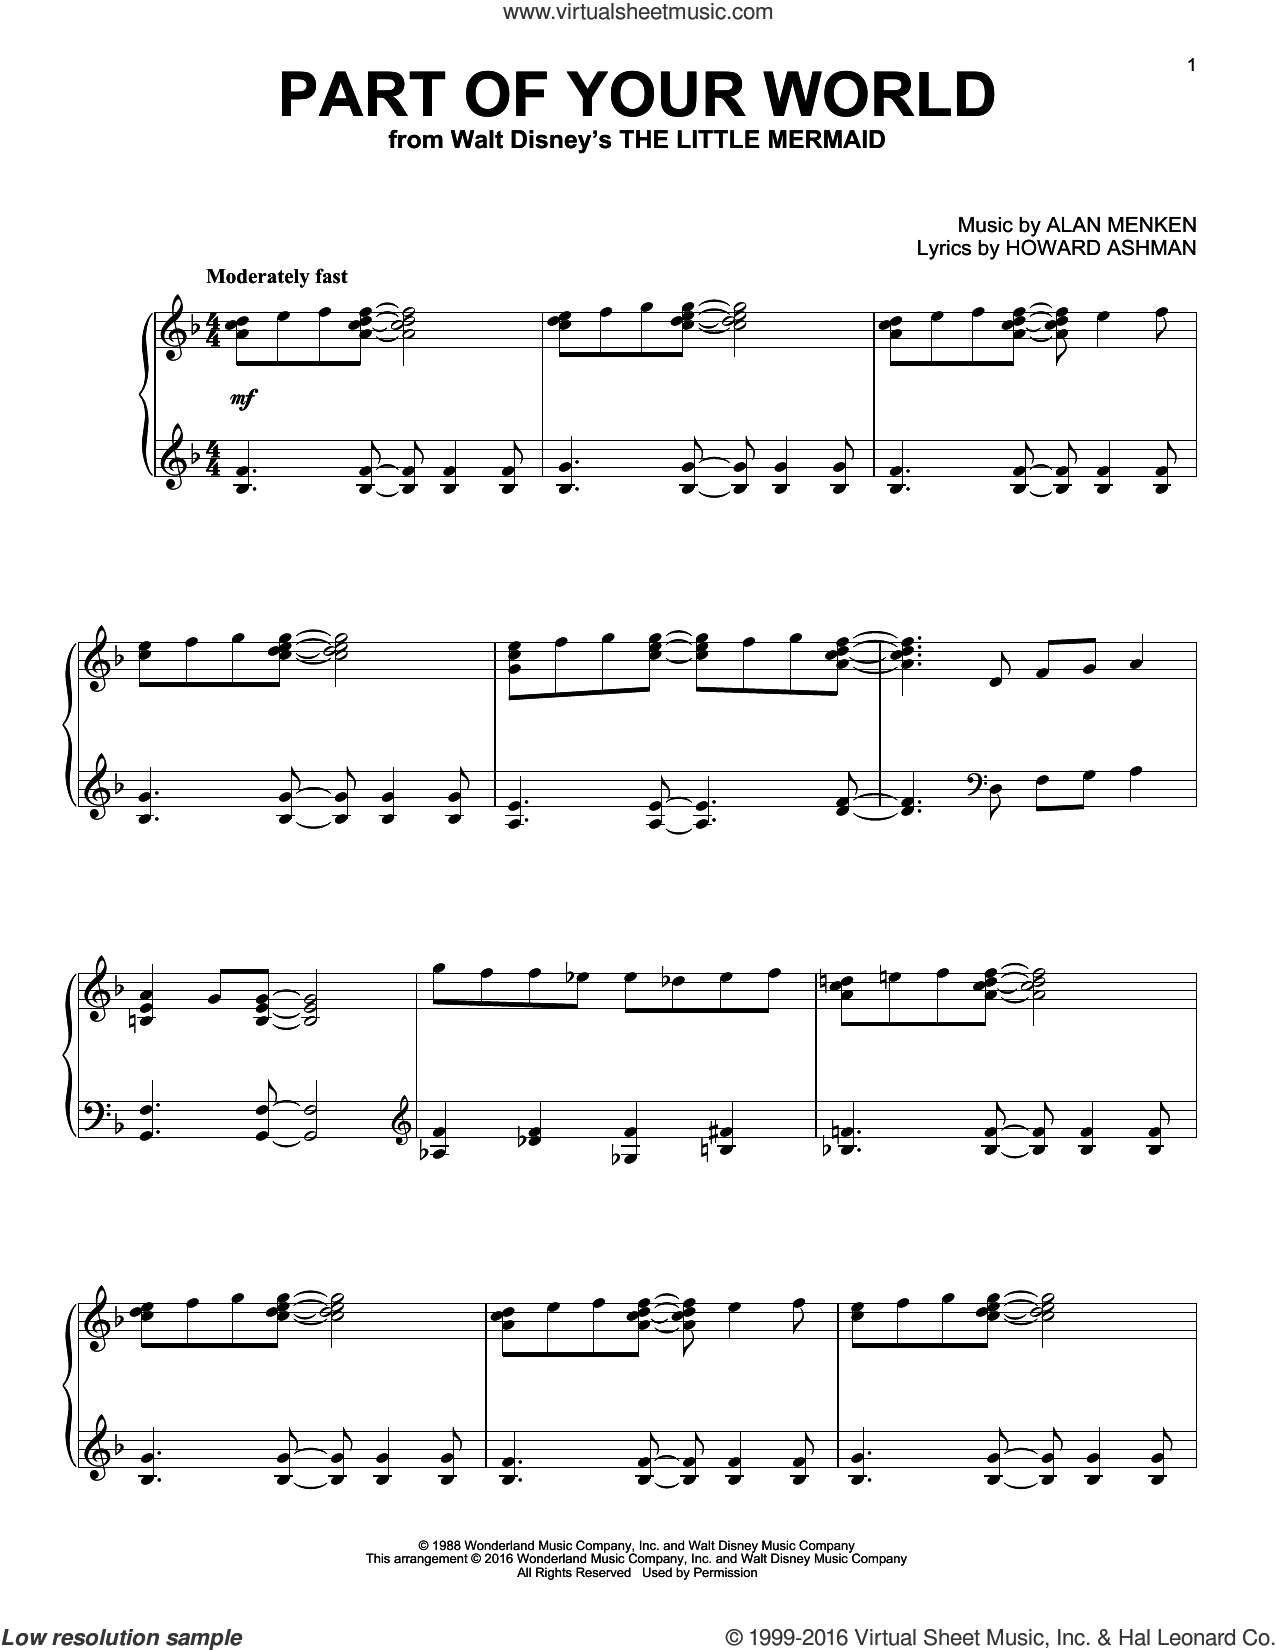 Part Of Your World sheet music for piano solo by Alan Menken and Howard Ashman, intermediate skill level